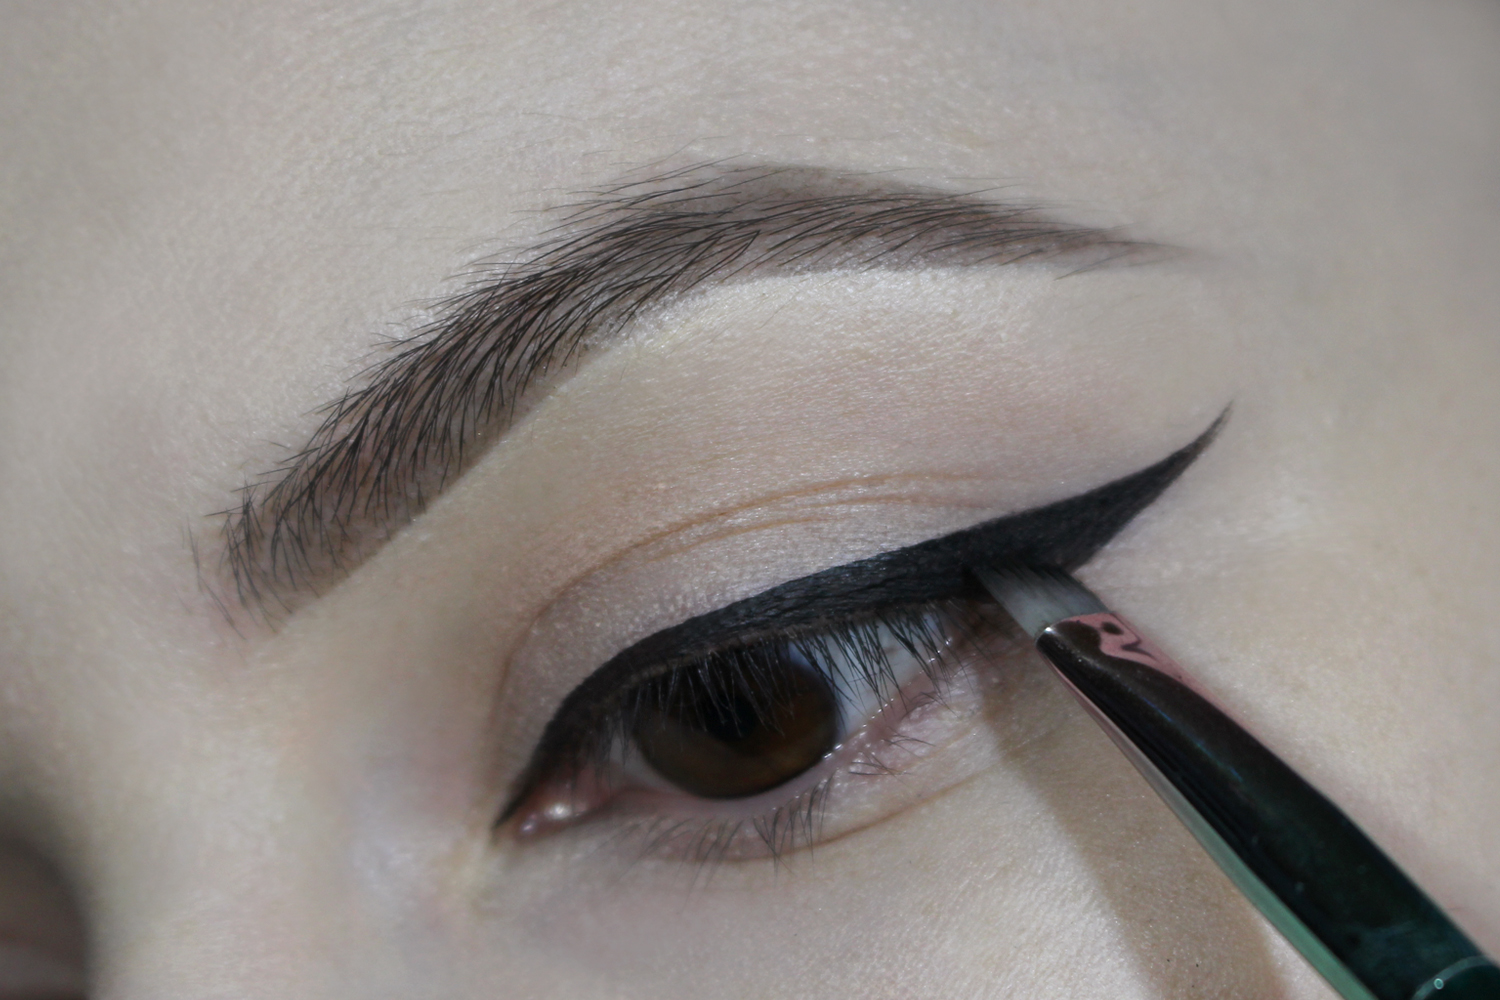 a close-up picture of an eye with a black cat eyeliner makeup look